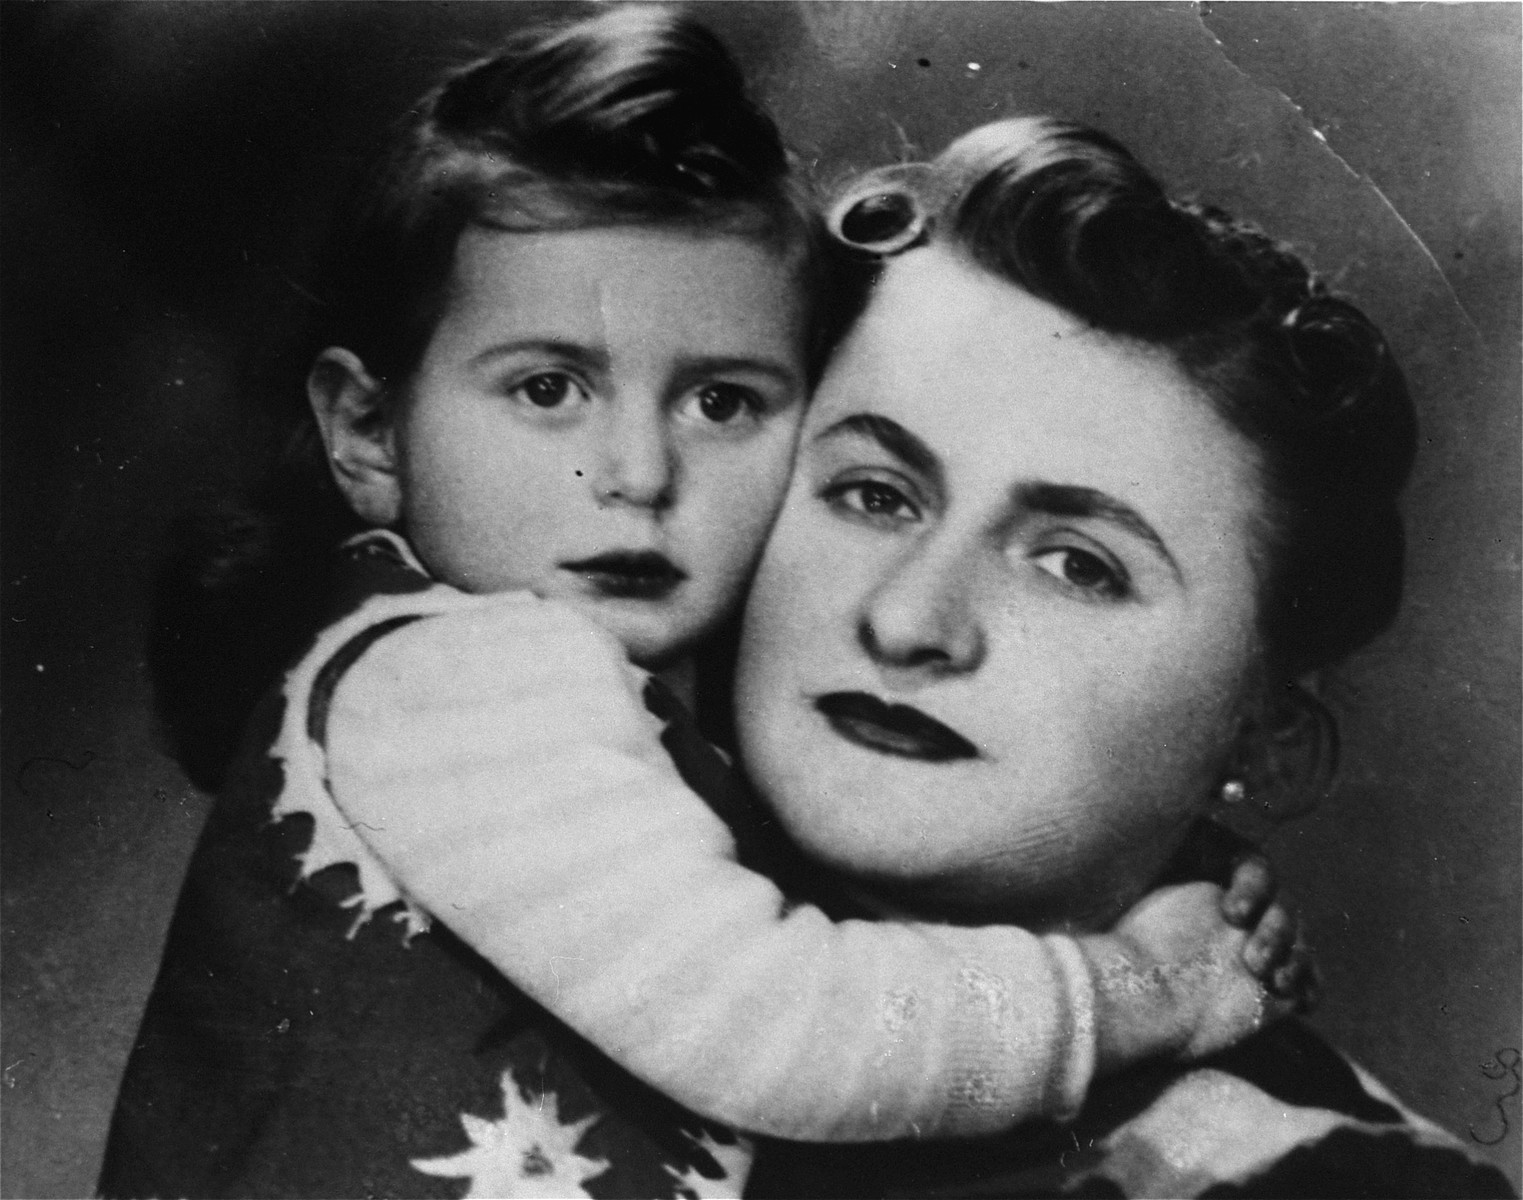 Portrait of Thea Borzuk and her mother taken in the Warsaw ghetto on her second birthday.